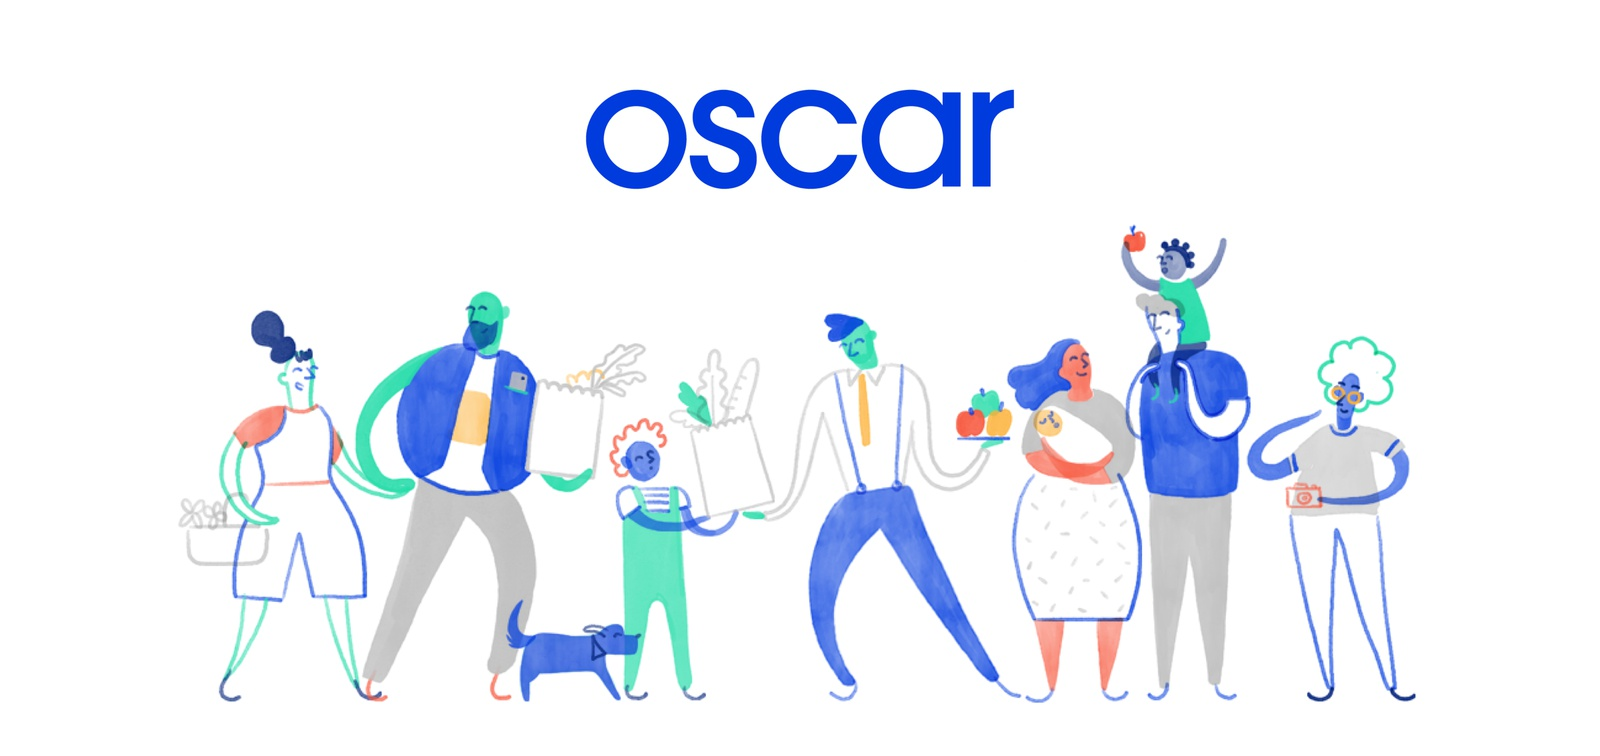 Oscar Health eyes $6.7B valuation with upcoming IPO